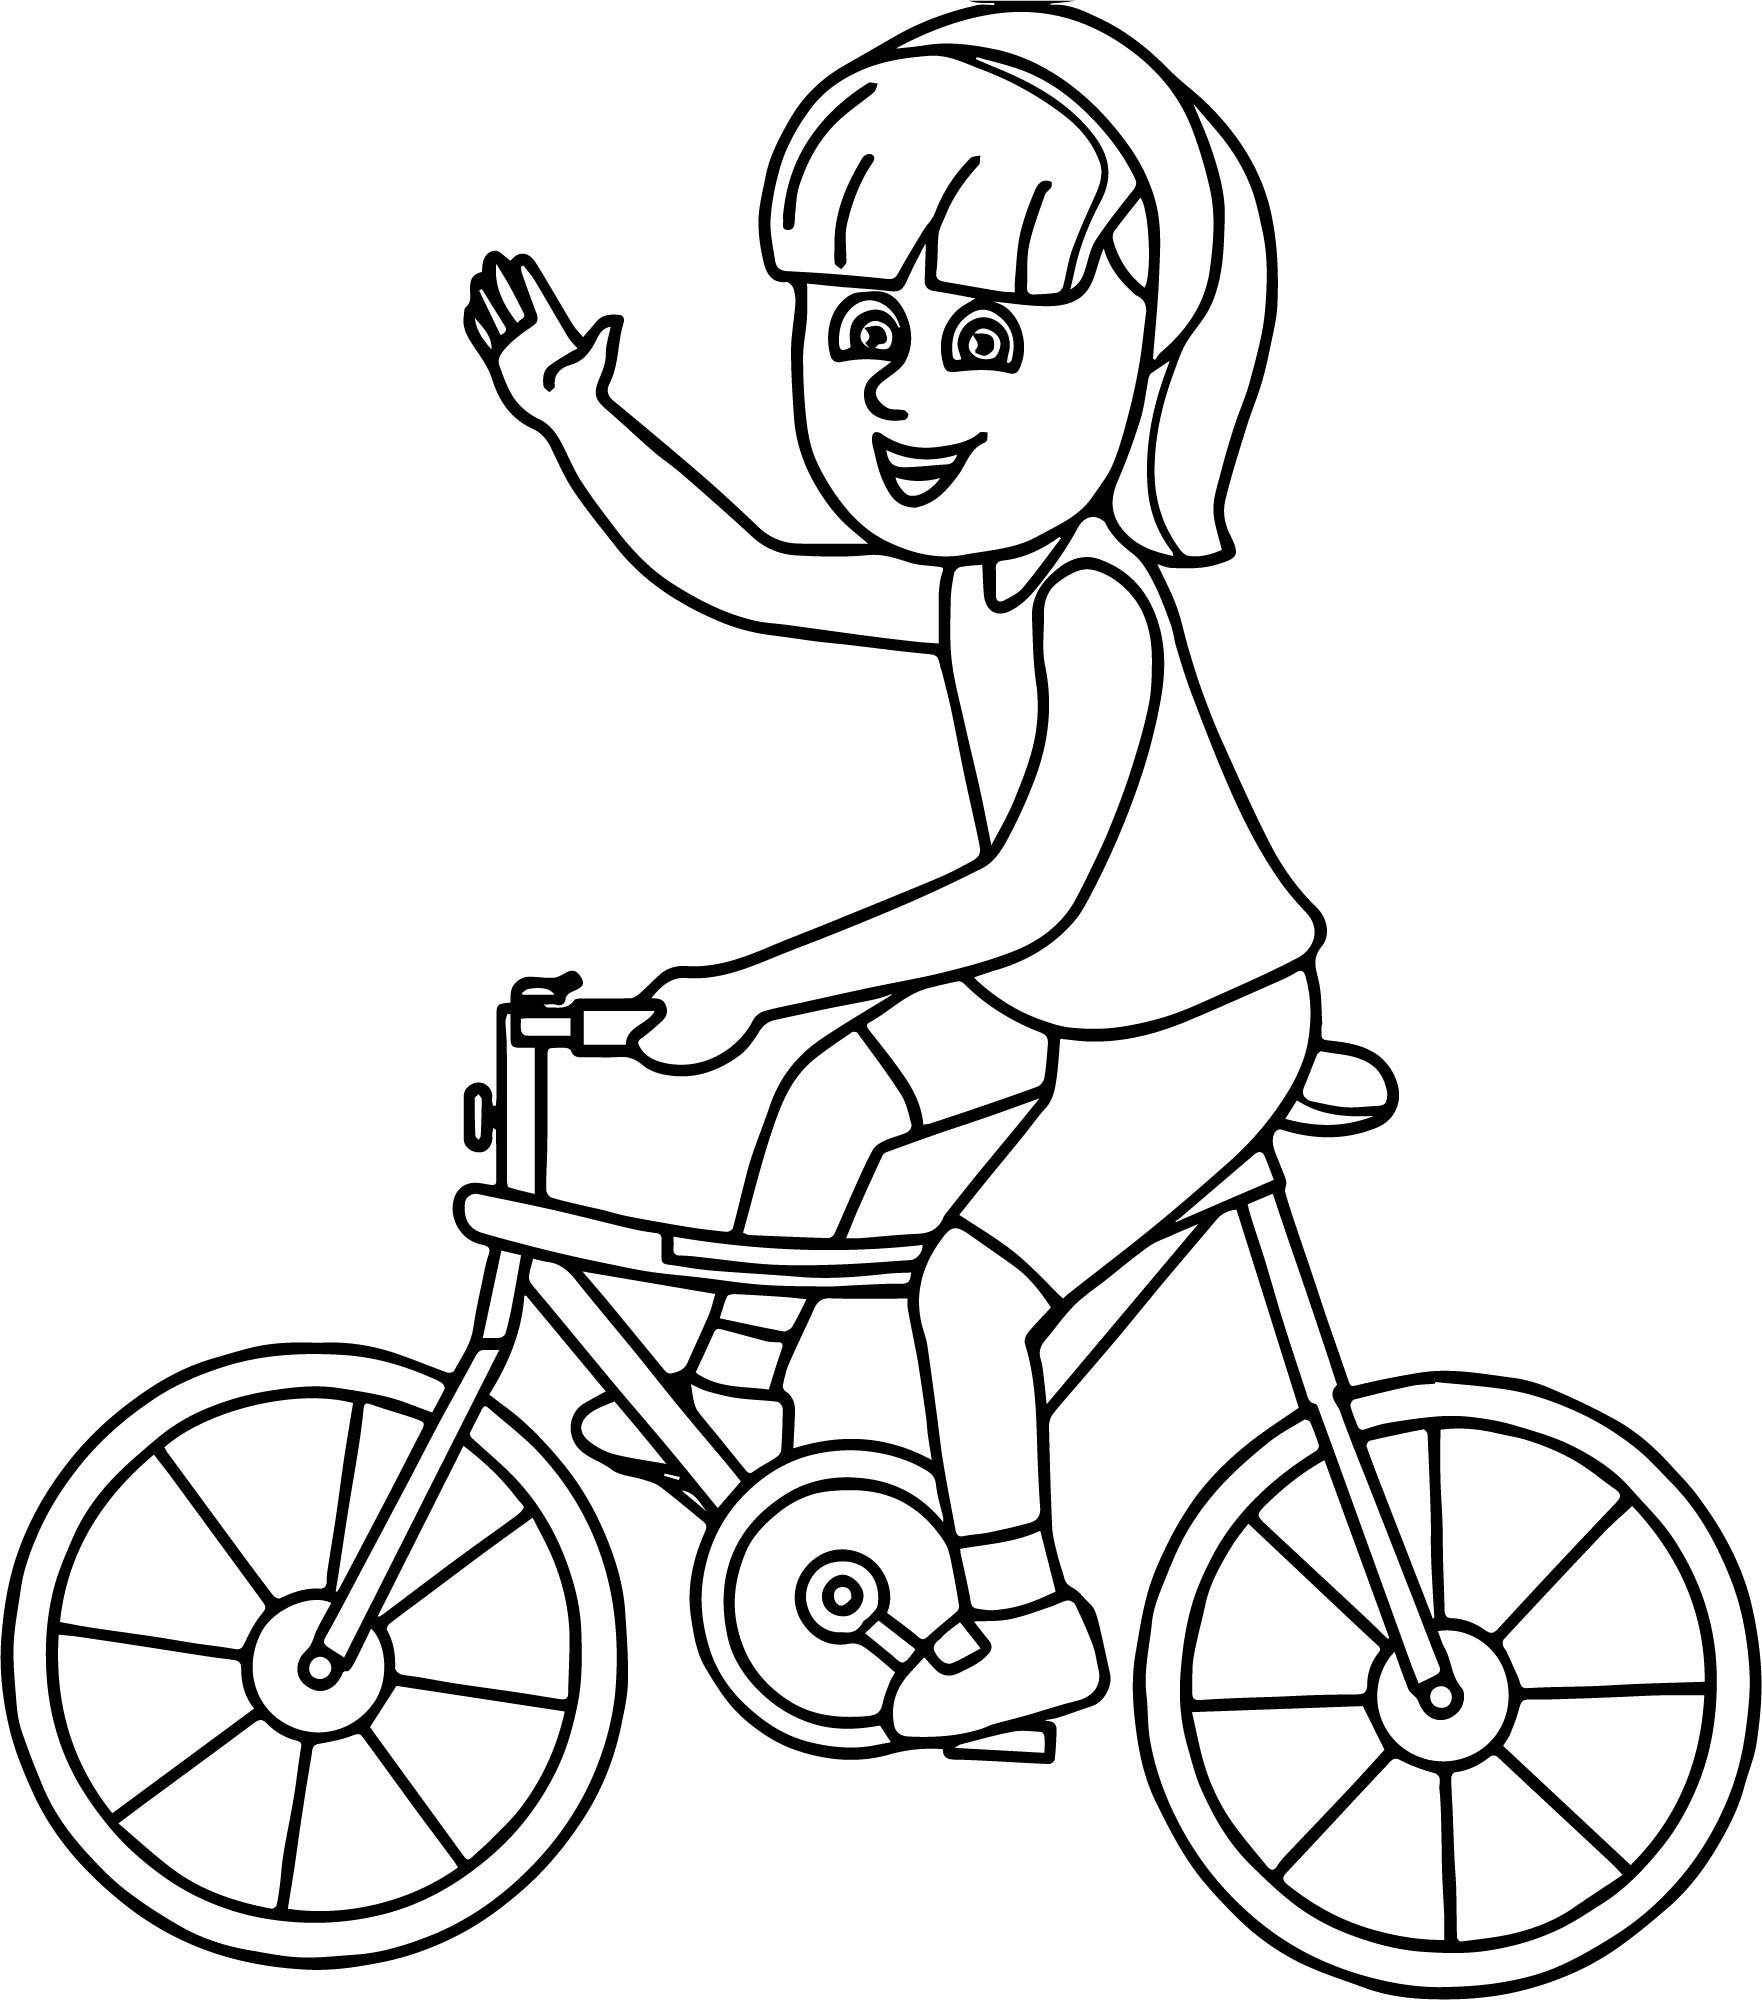 1762x2000 Yamaha Dirt Bike Coloring Page Free Draw To Color